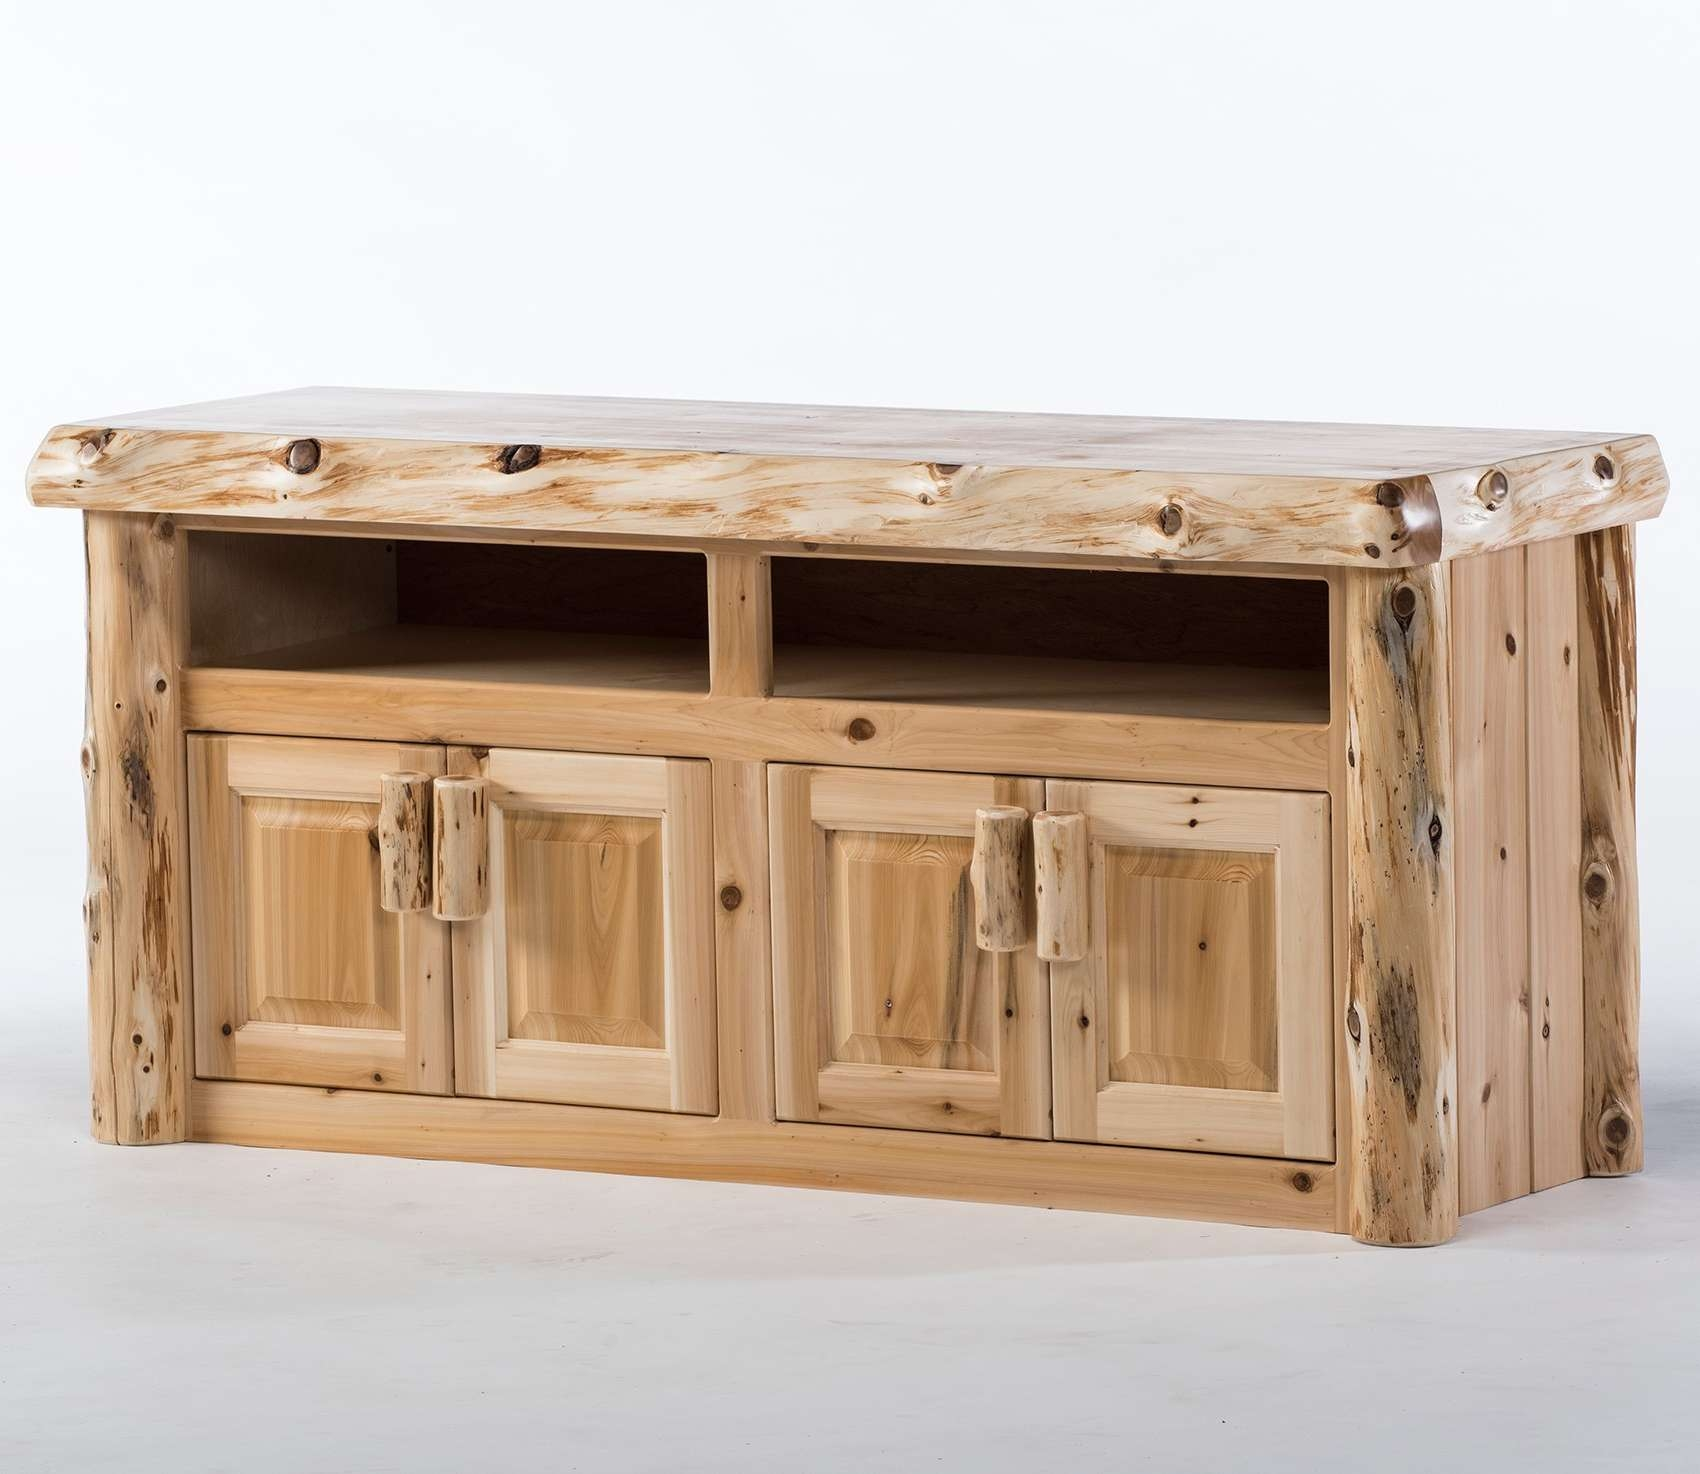 Reclaimed Wood Tv Stands & Rustic Tv Stands: Log Tv Stand & Rustic With Regard To Rustic Tv Stands (View 8 of 20)